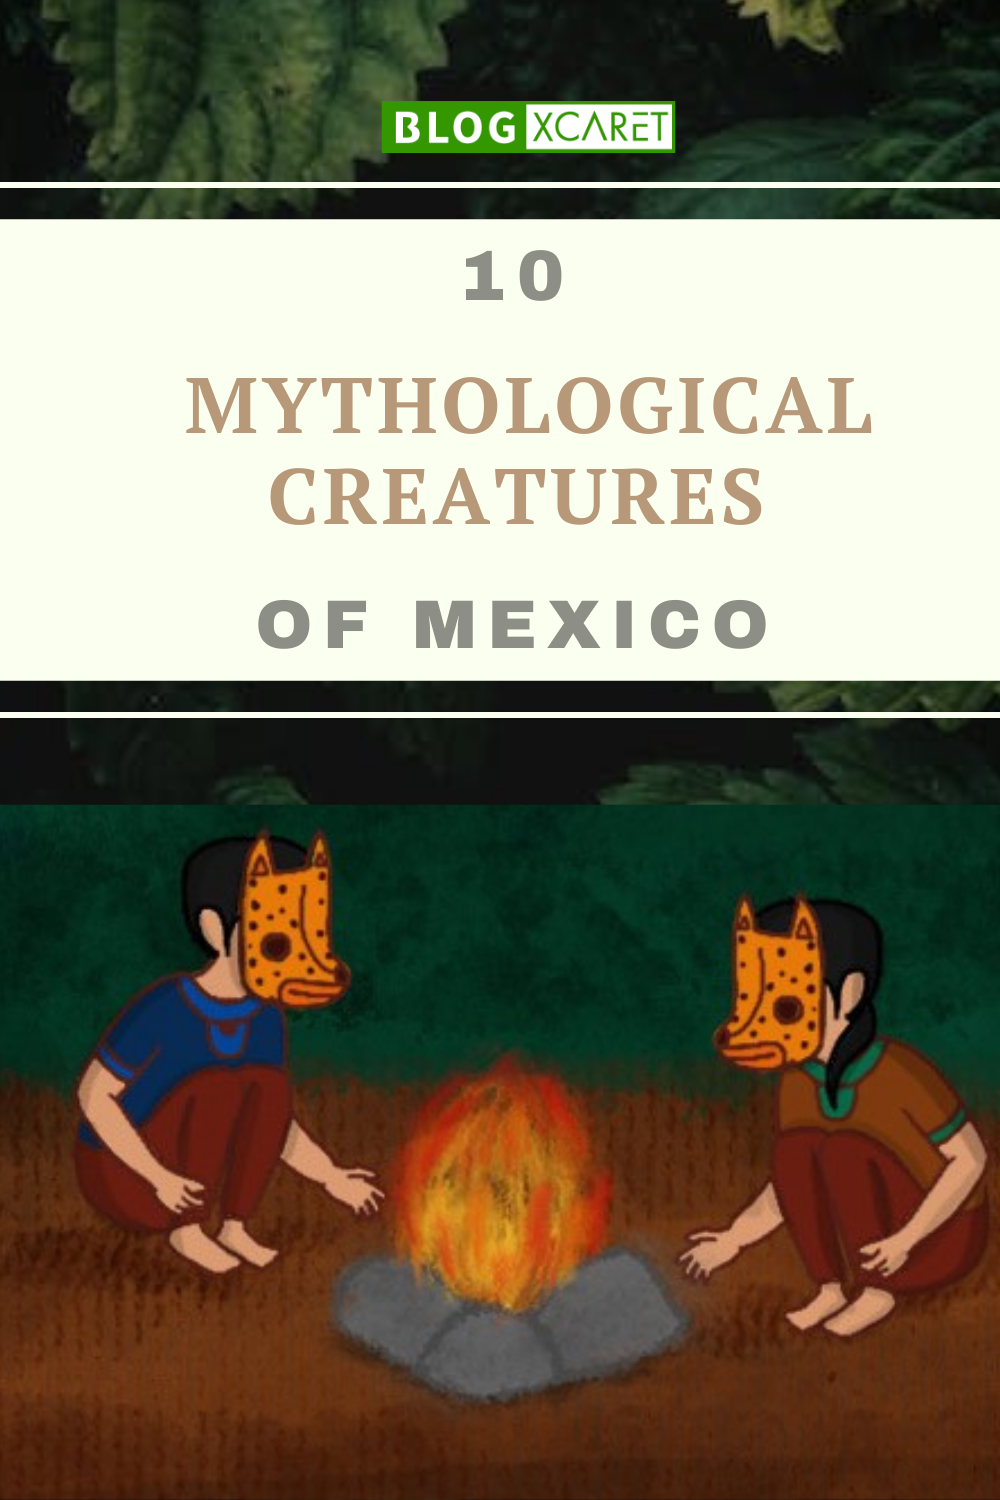 10 mythological creatures of mexico-pin